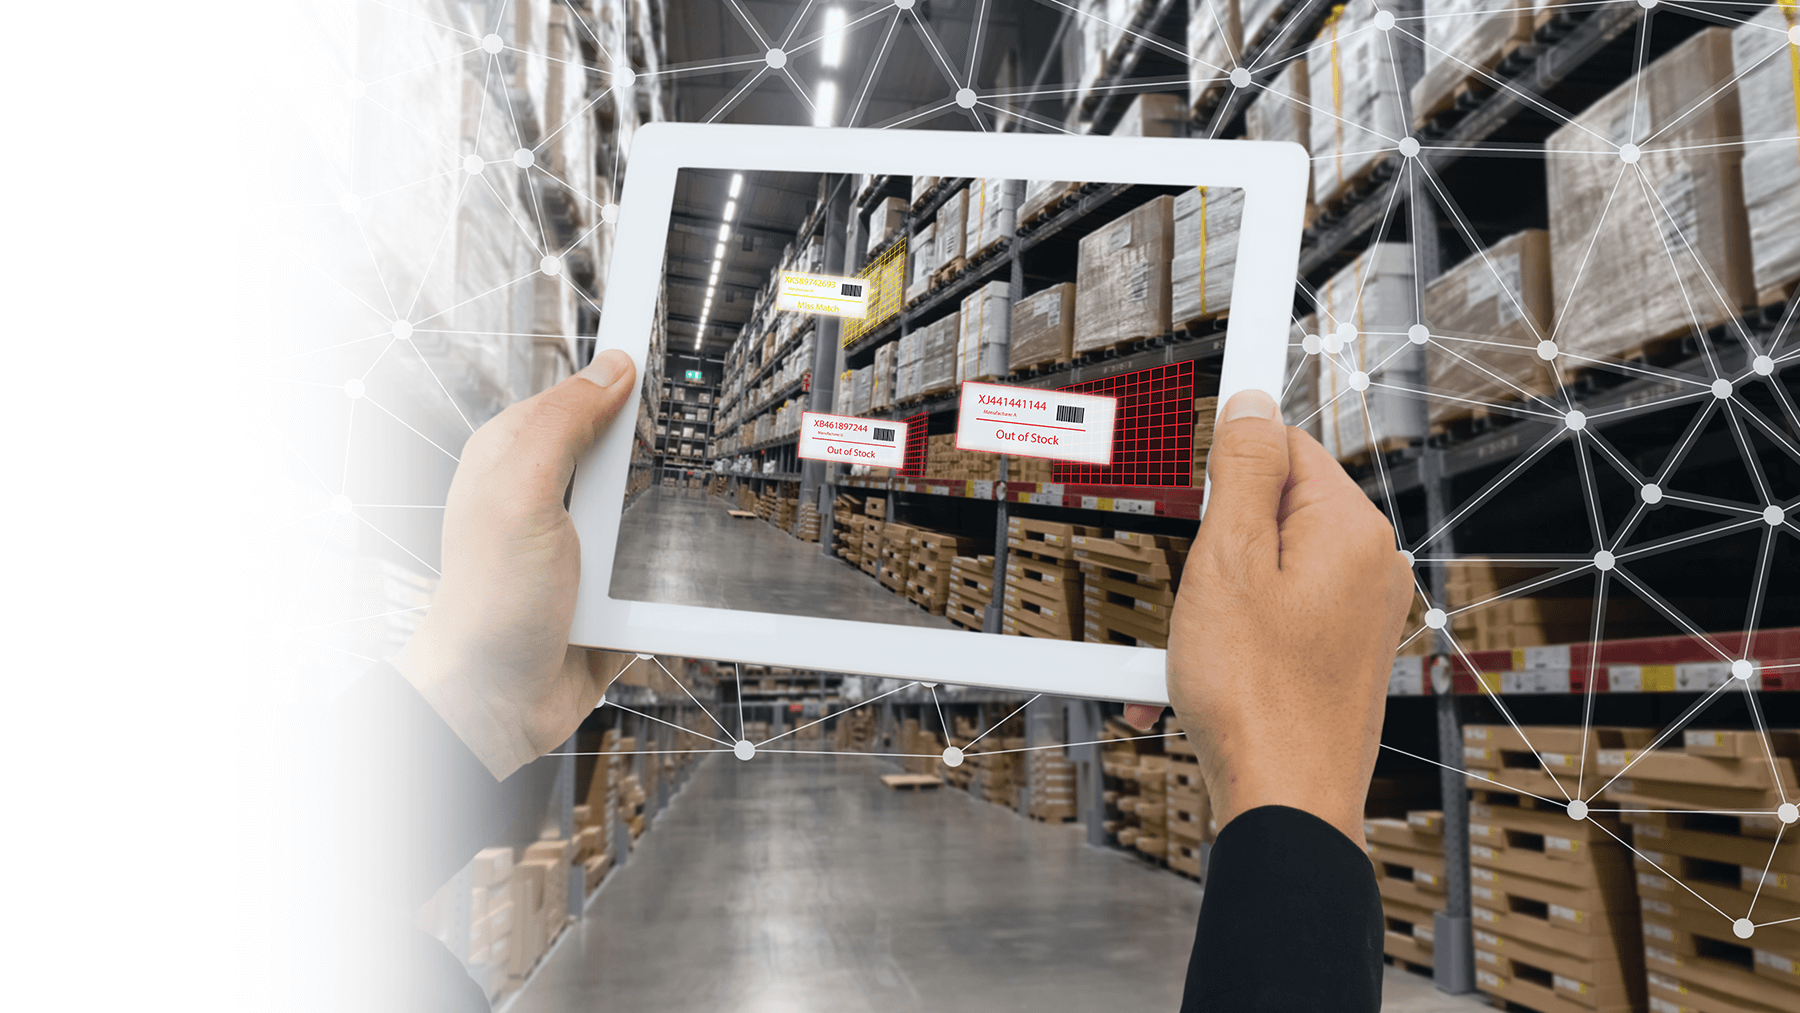 man holding tablet in front of warehouse shelves